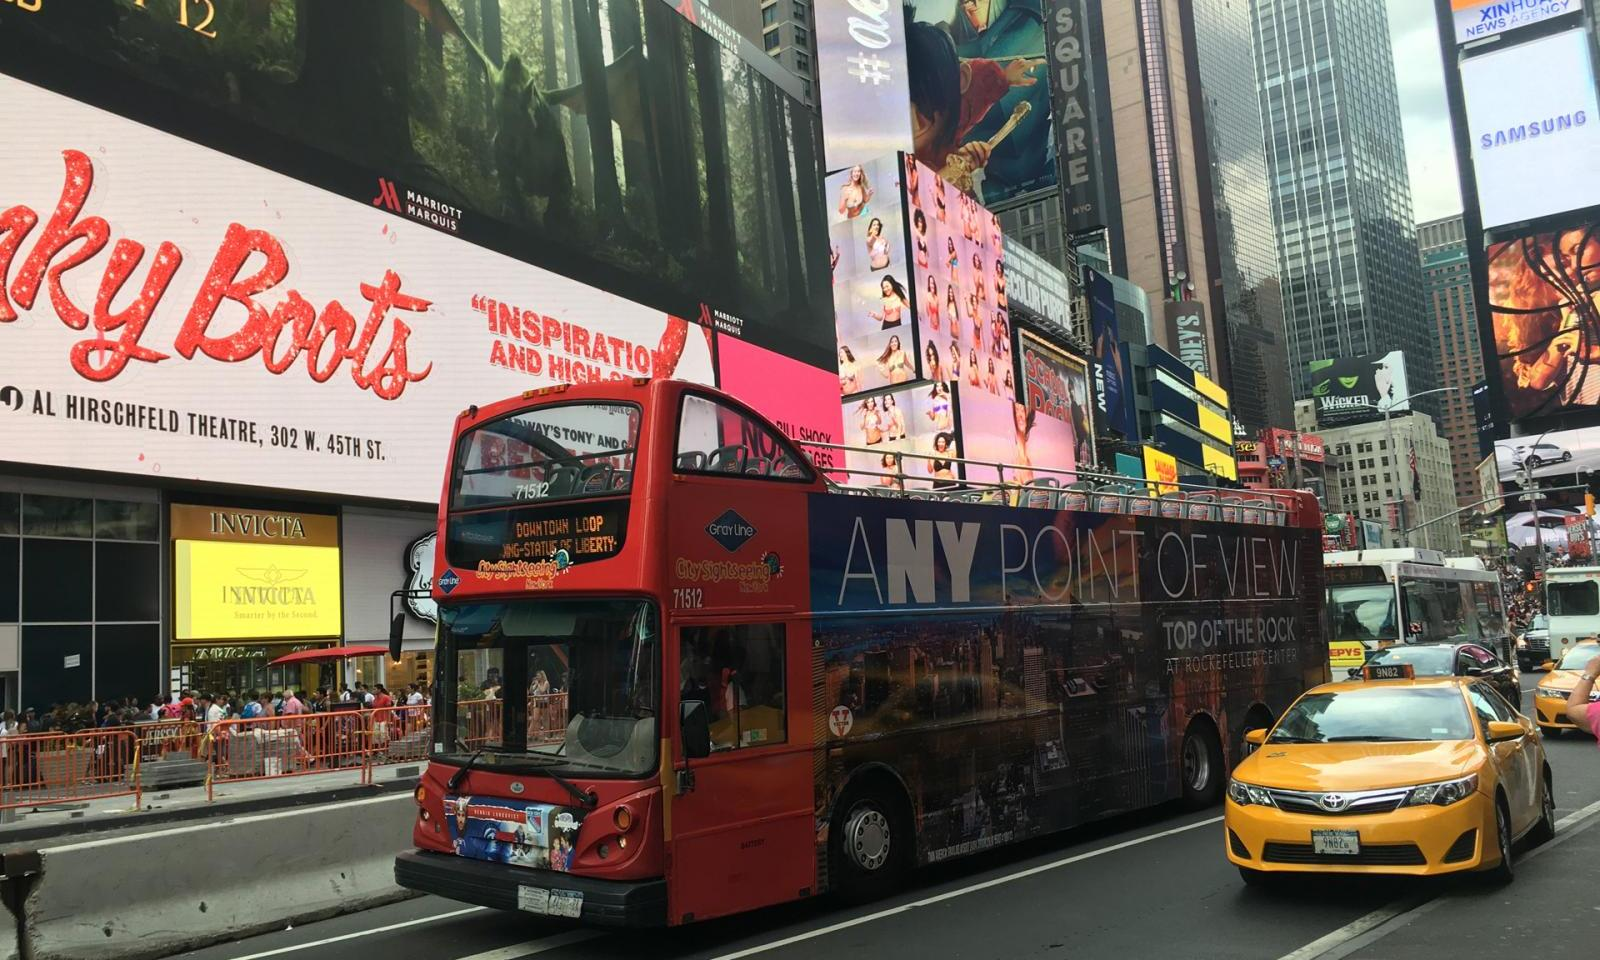 Dec 03, · Gray Line New York Sightseeing, New York City: Hours, Address, Gray Line New York Sightseeing Reviews: /5. United States ; New York (NY) Keep in mind, there are several different Hop on hop off bus lines under Grey lines. They are colour /5(K).